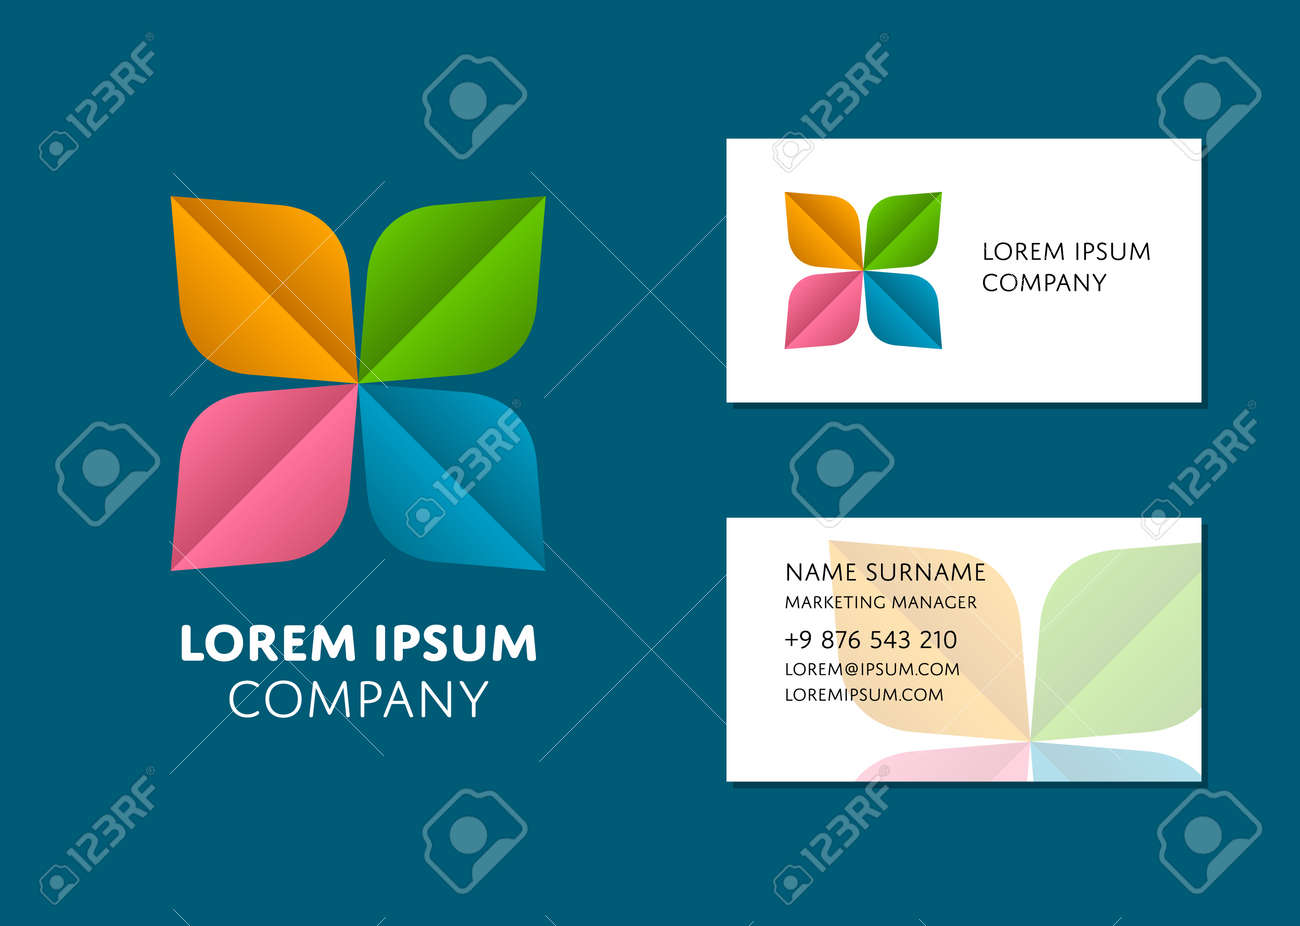 Creative business card template with trendy colorful logo name creative business card template with trendy colorful logo name work position phone friedricerecipe Choice Image